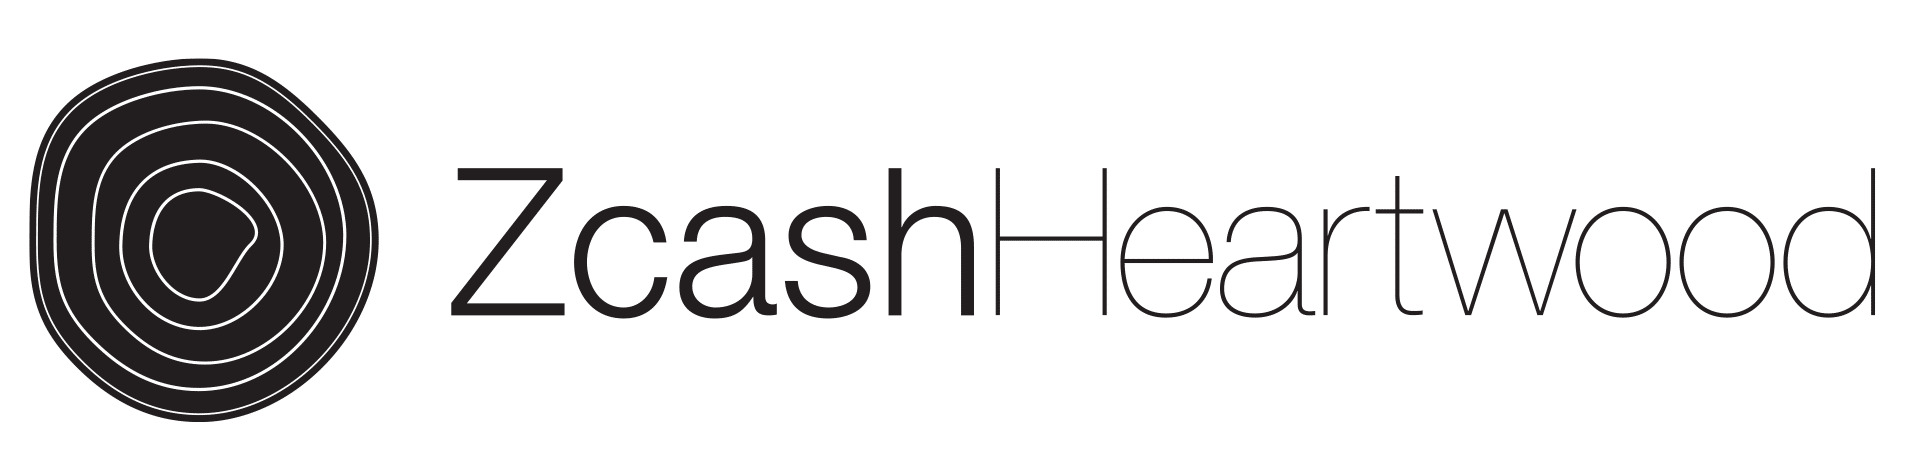 Black Zcash Heartwood horizontal logo